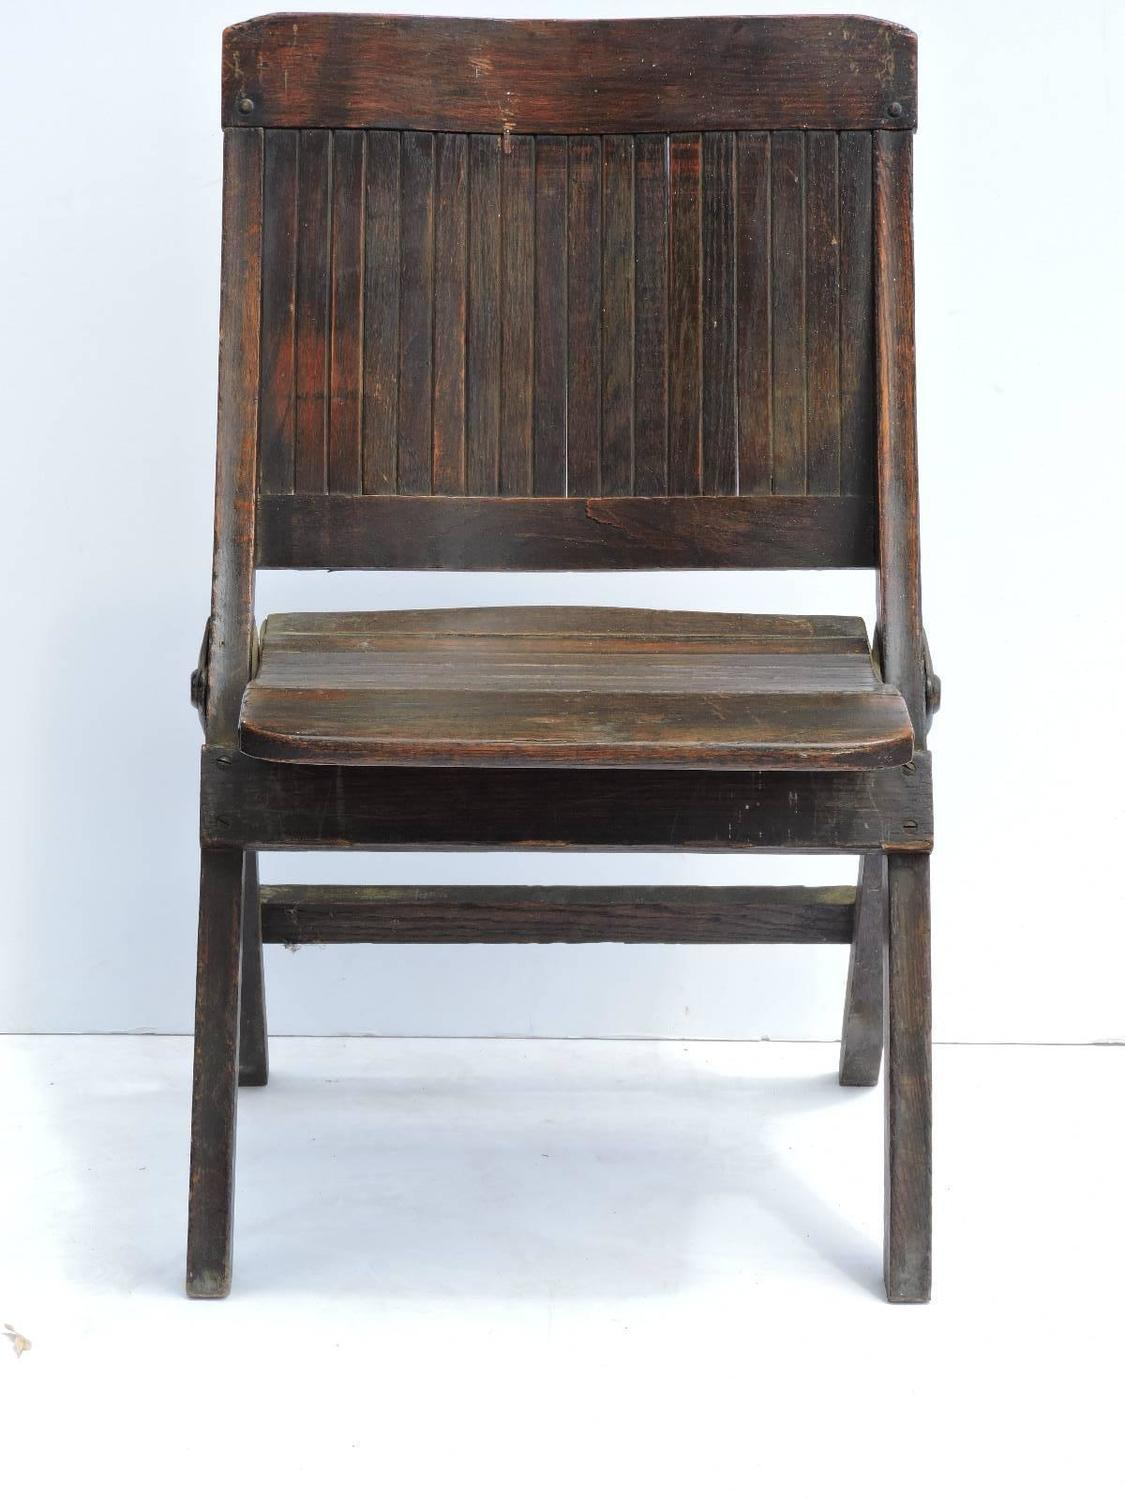 Antique Slatted Wood And Steel Folding Lodge Chairs For